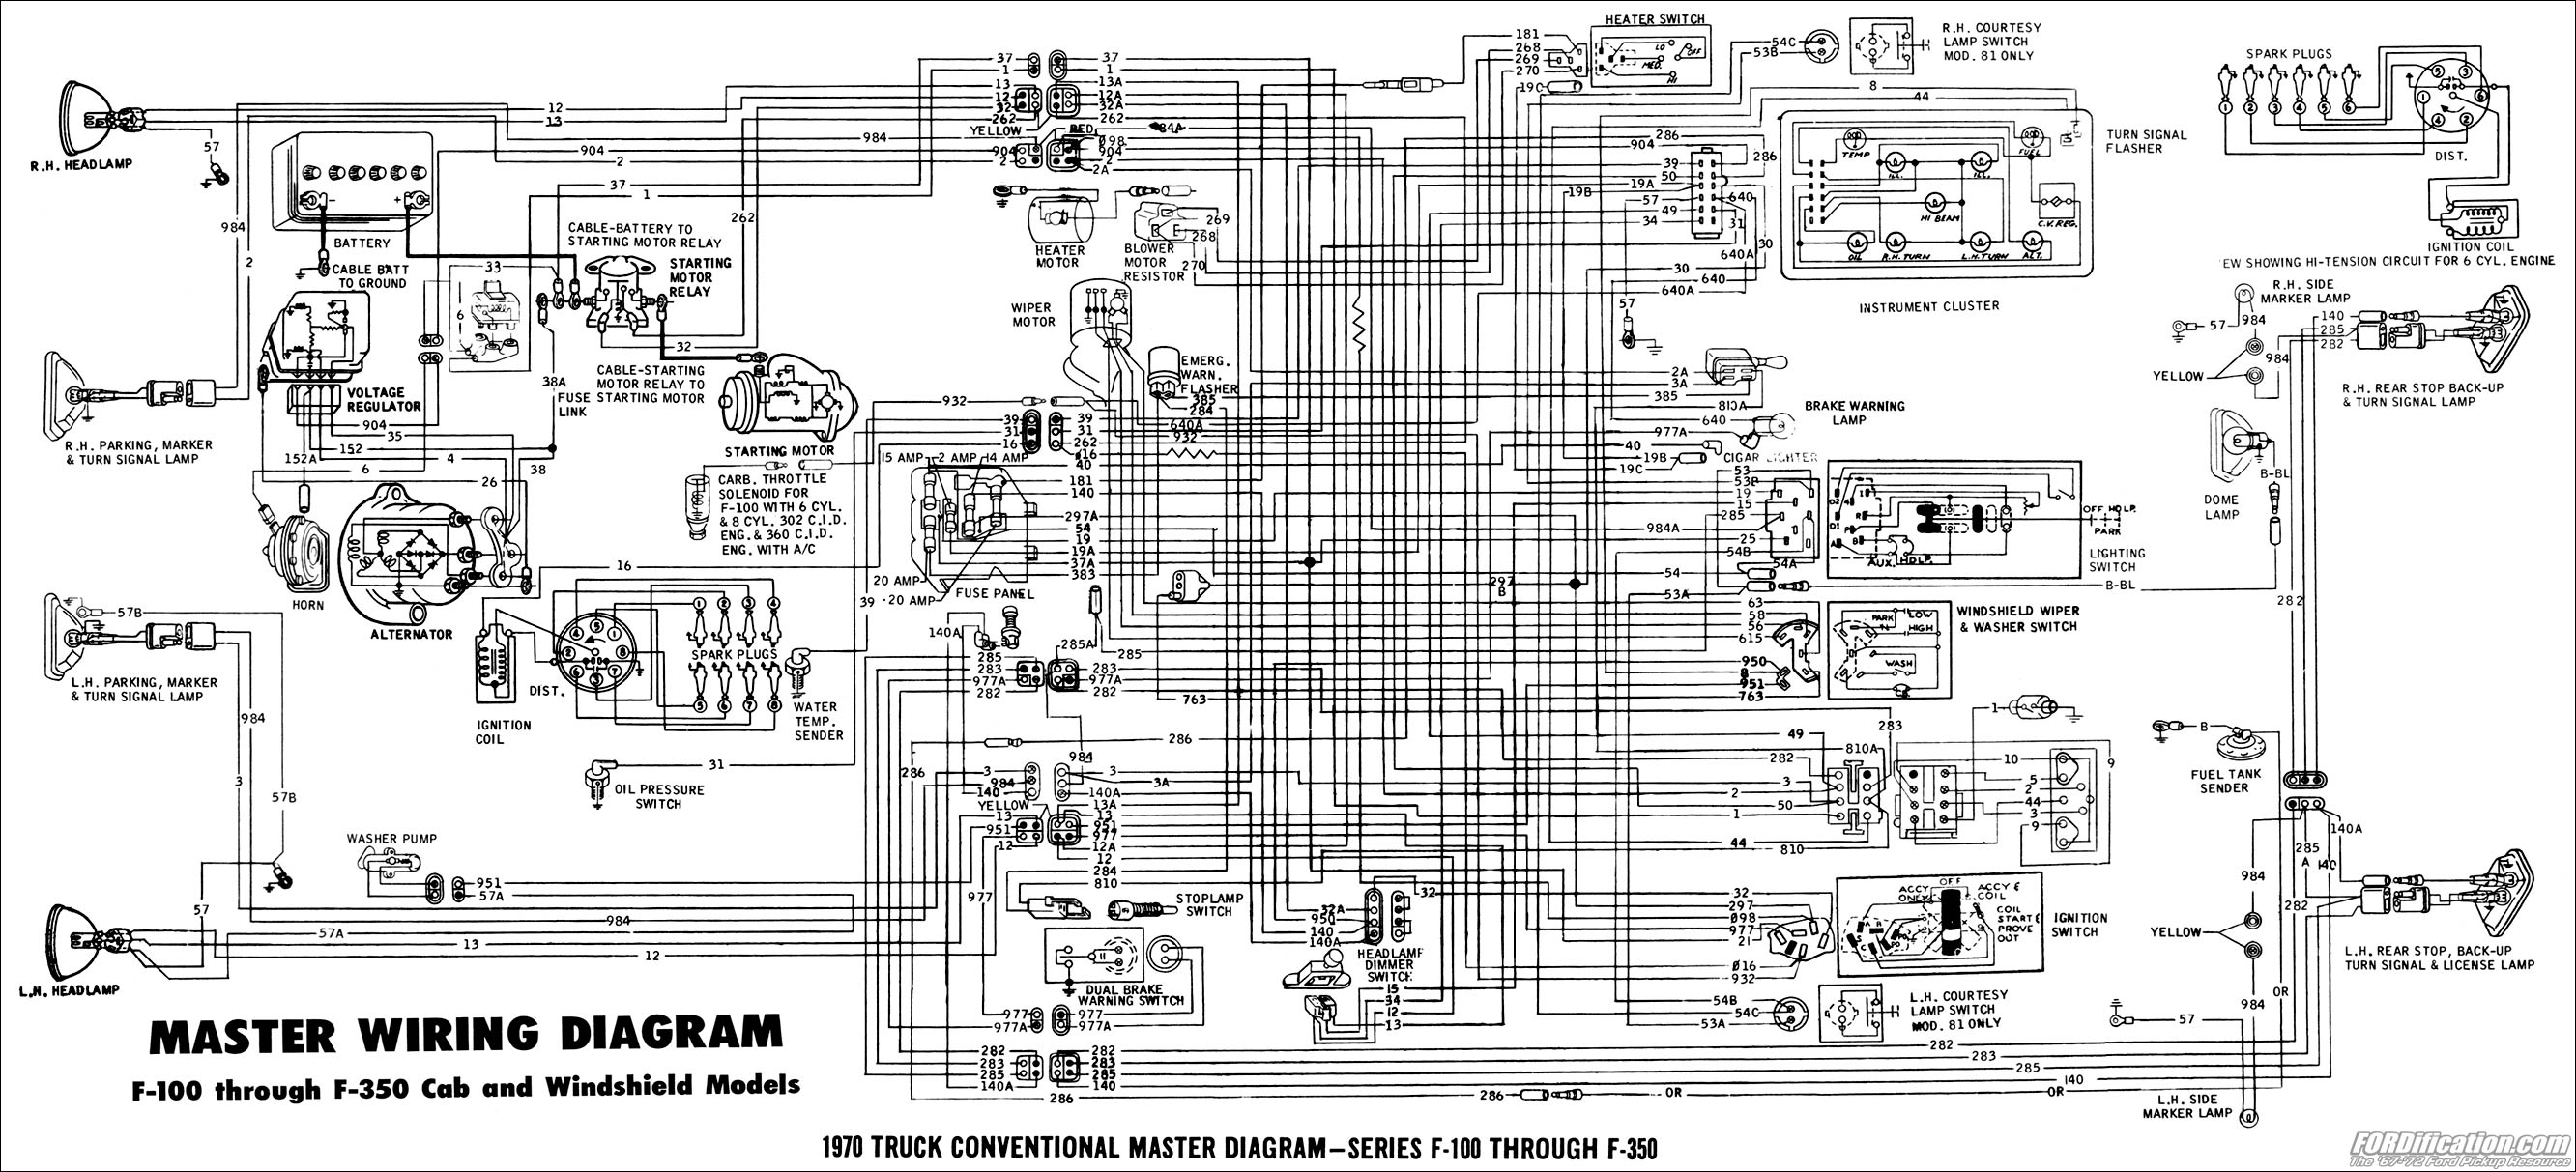 1972 Ford F100 Wiring Schematic Books Of Diagram For Buick Skylark 1970 F 250 Opinions About U2022 Rh Voterid Co Ignition Switch